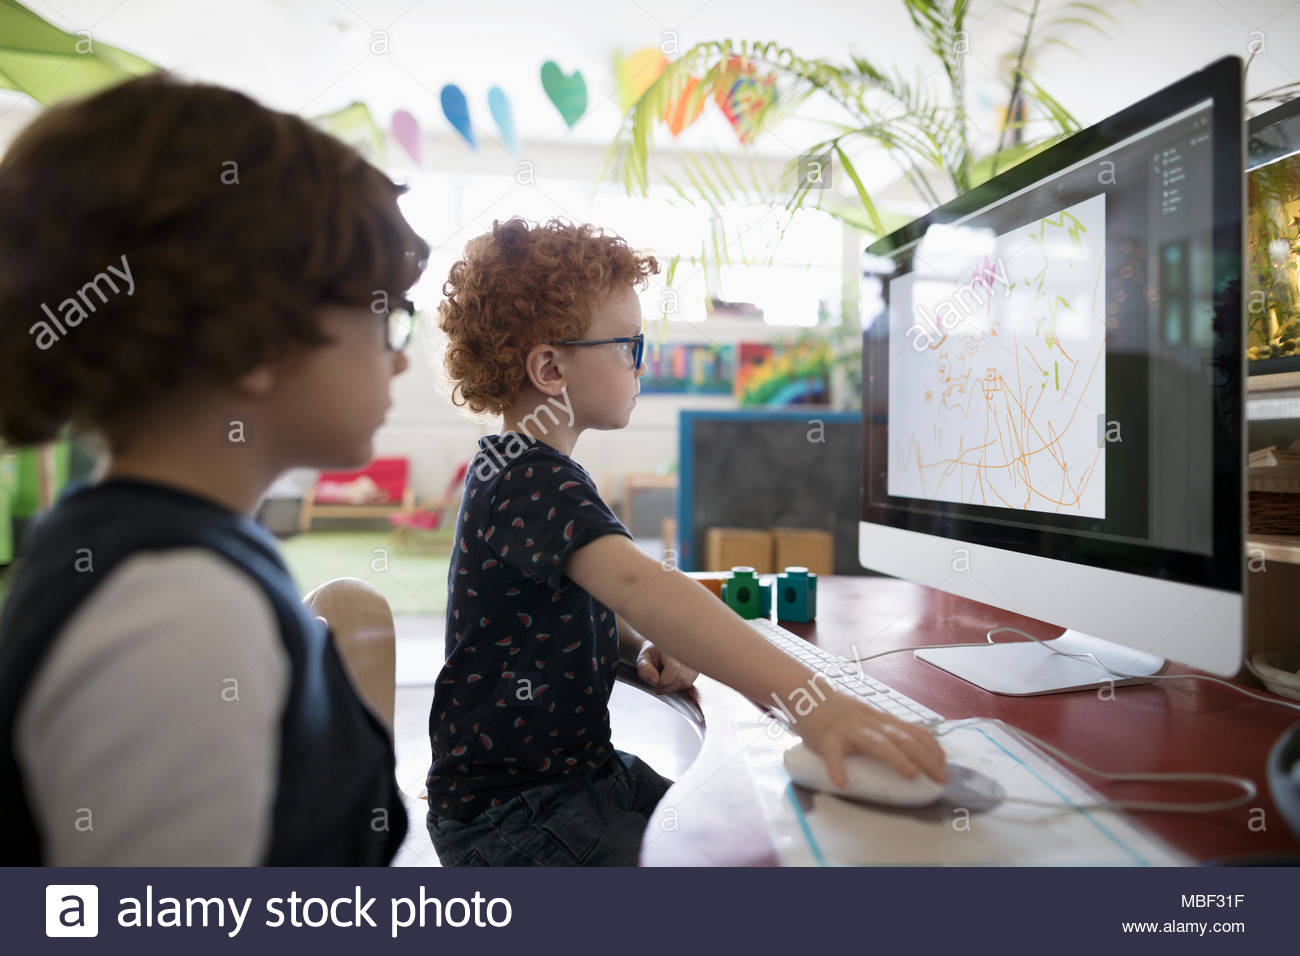 Preschool boy students drawing at computer in classroom - Stock Image